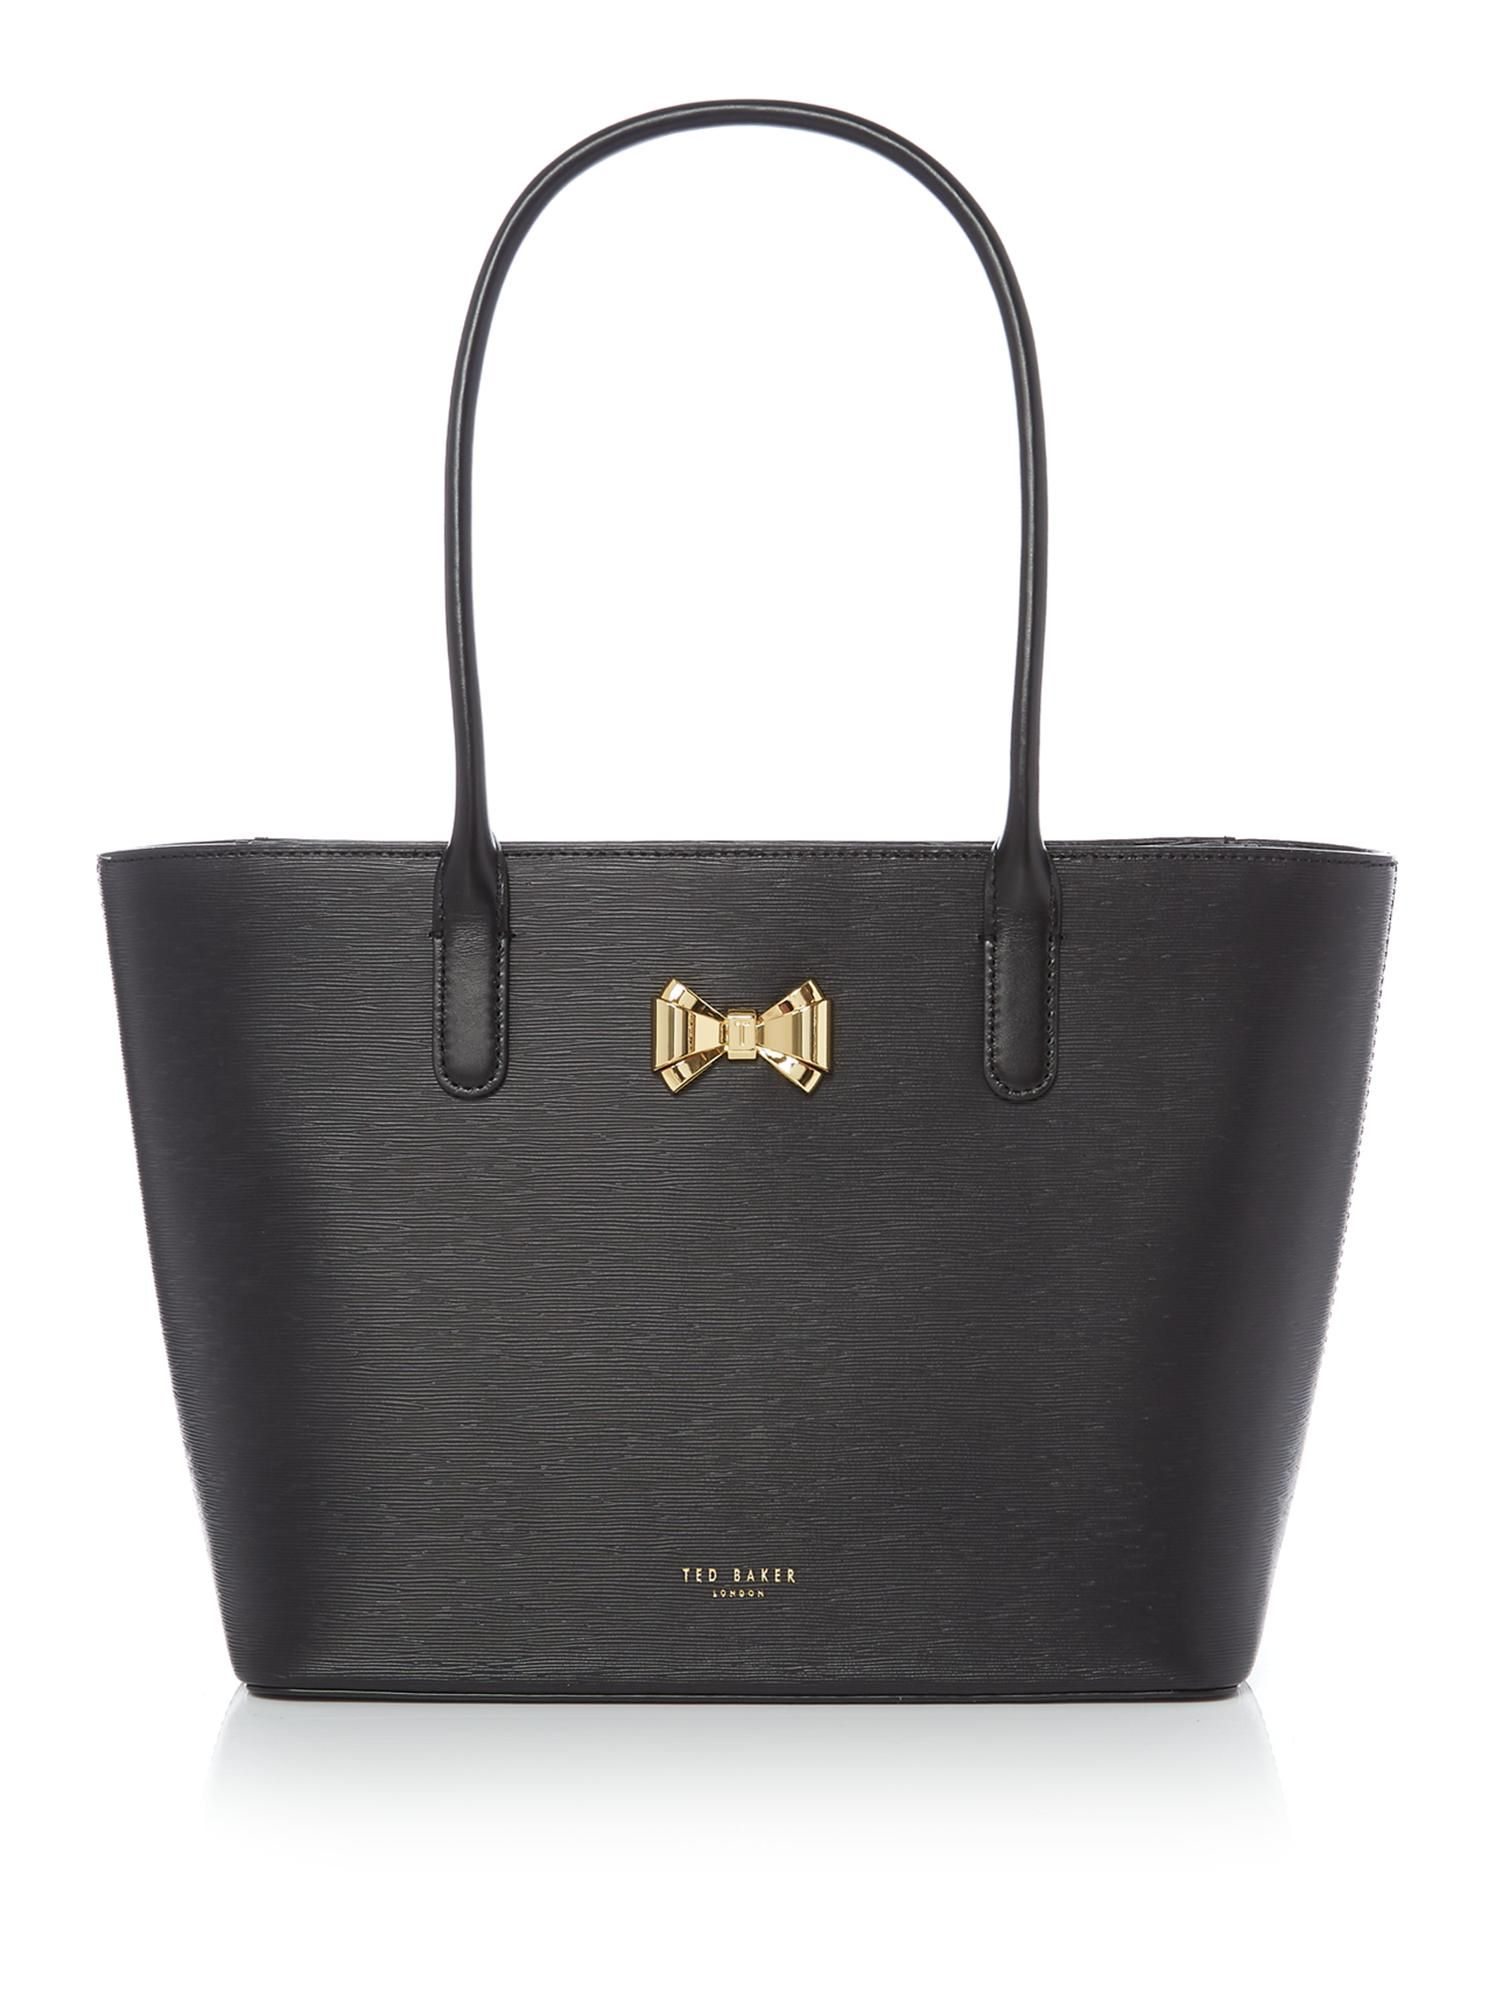 c6facf8cb4c879 Ted Baker Taleen Small Bow Tote Bag - House of Fraser